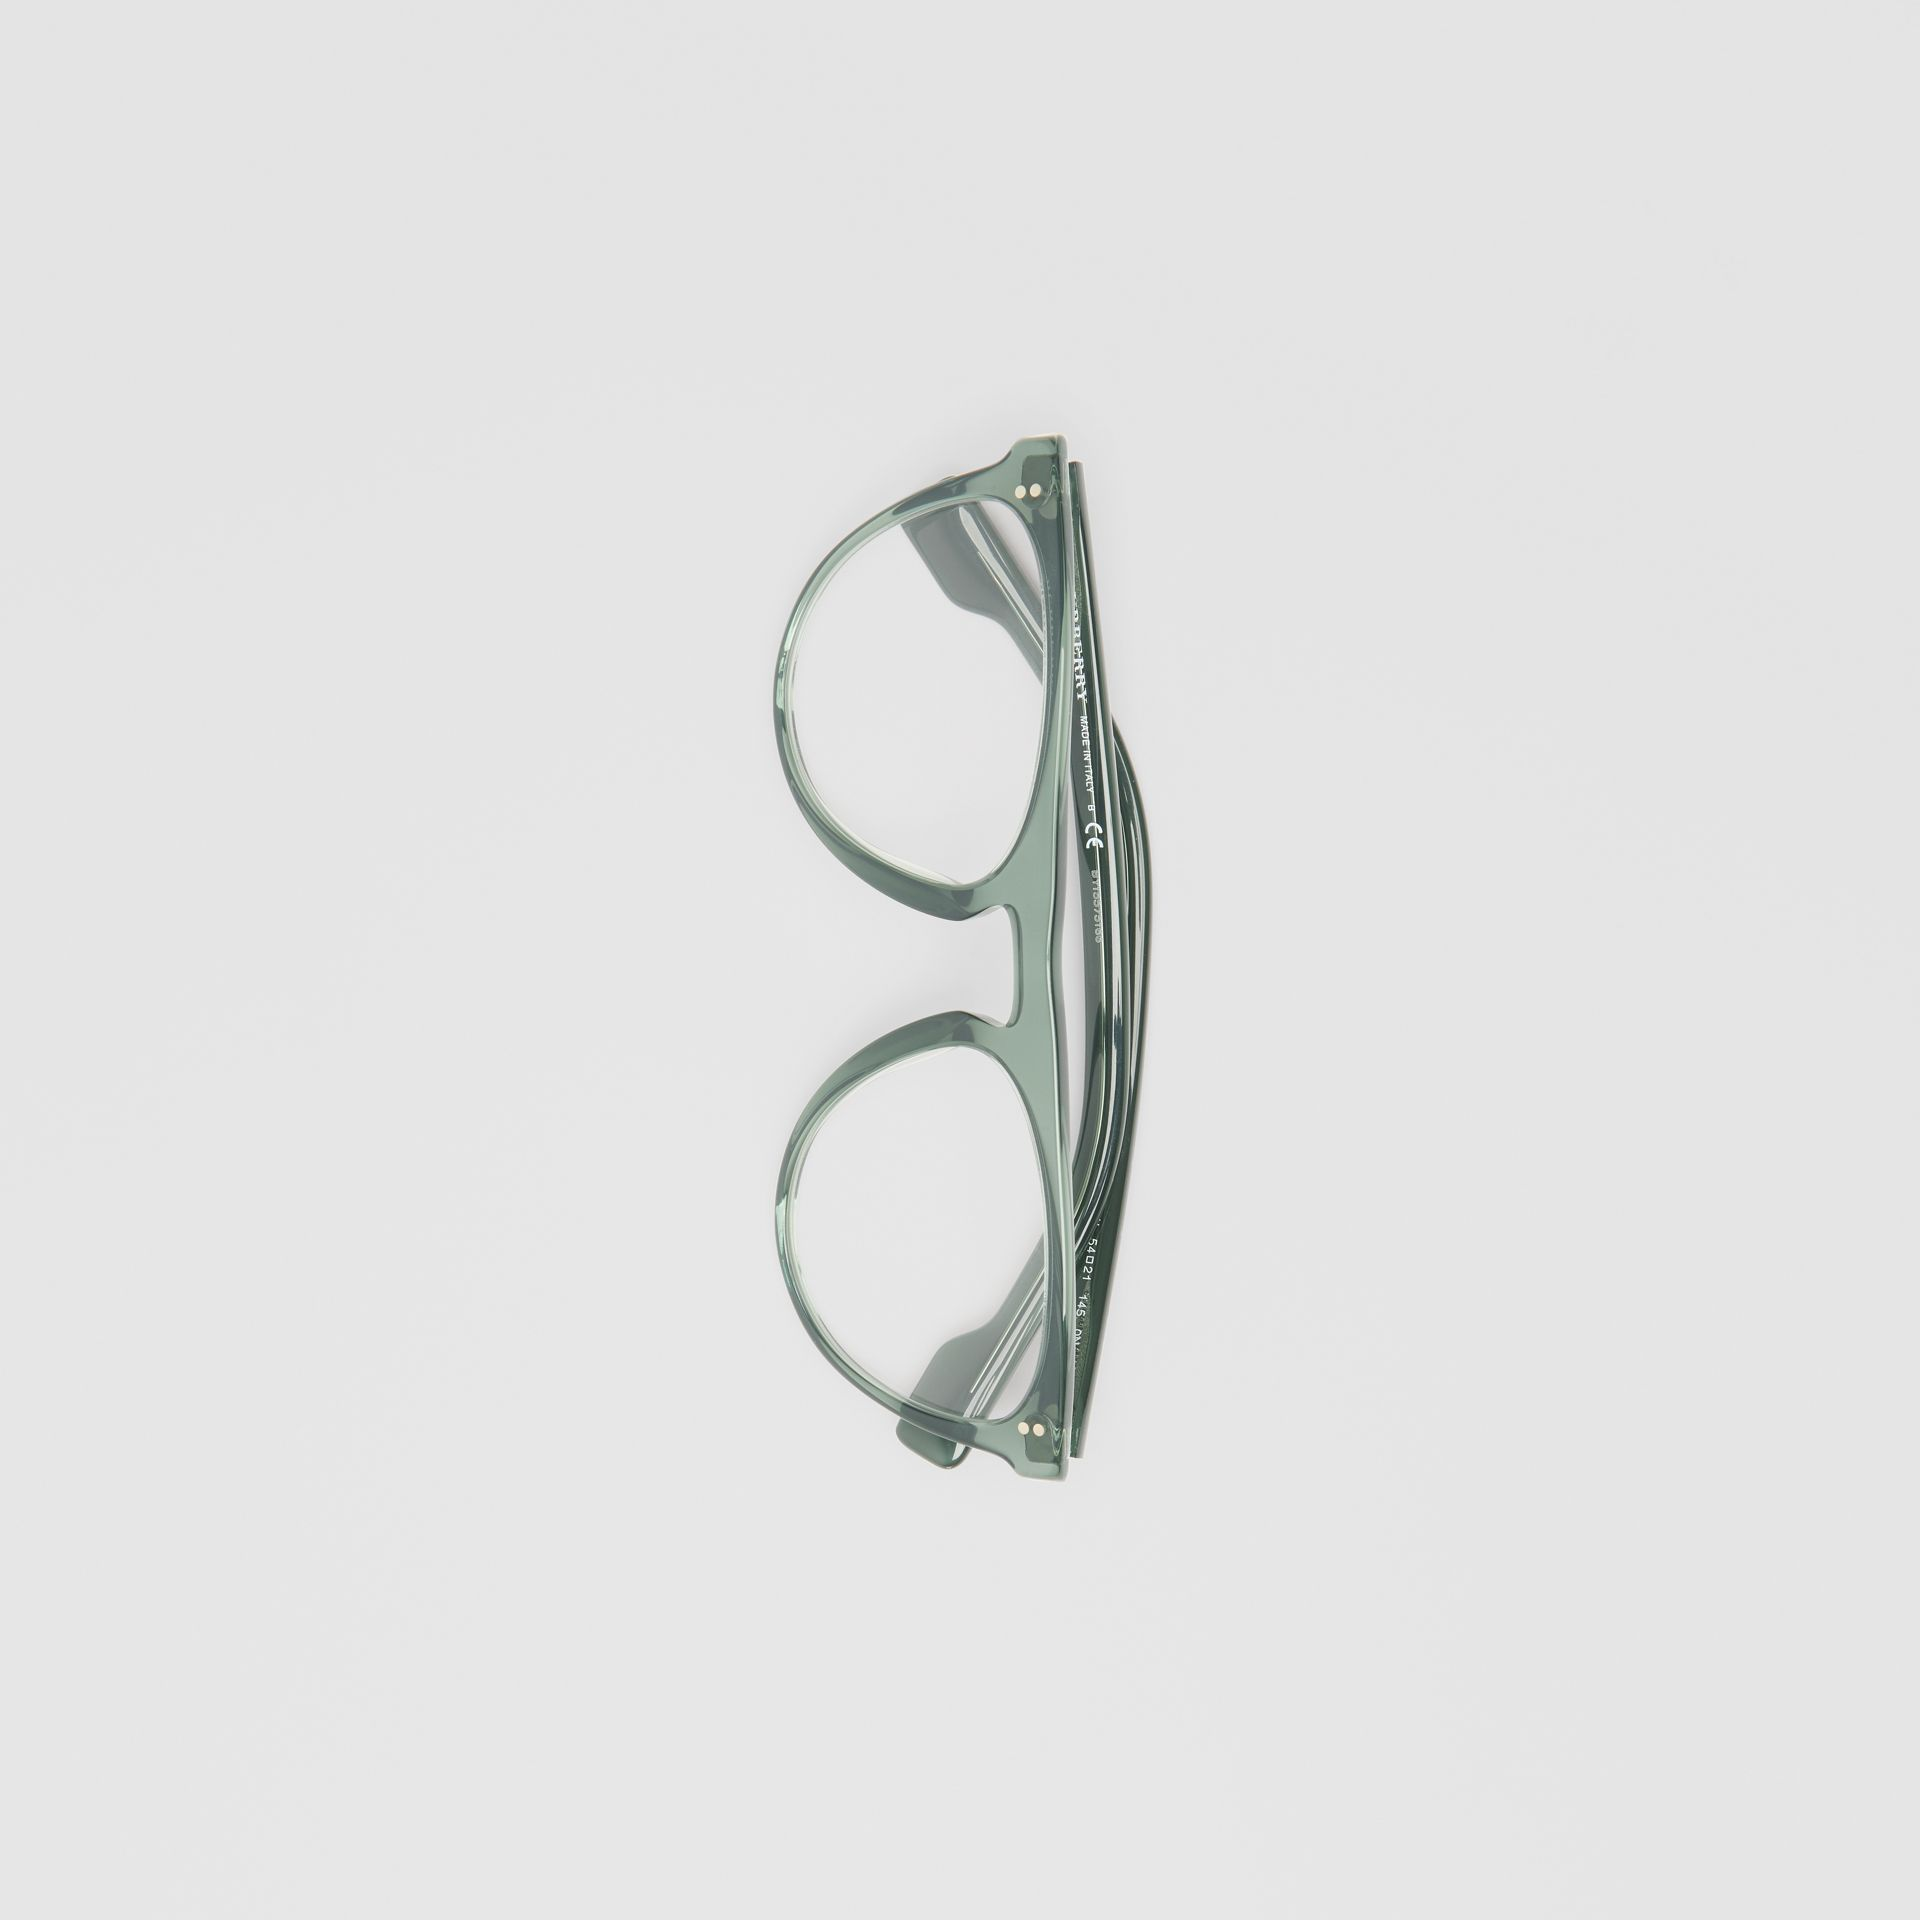 Keyhole D-shaped Optical Frames in Green - Men | Burberry United Kingdom - gallery image 3